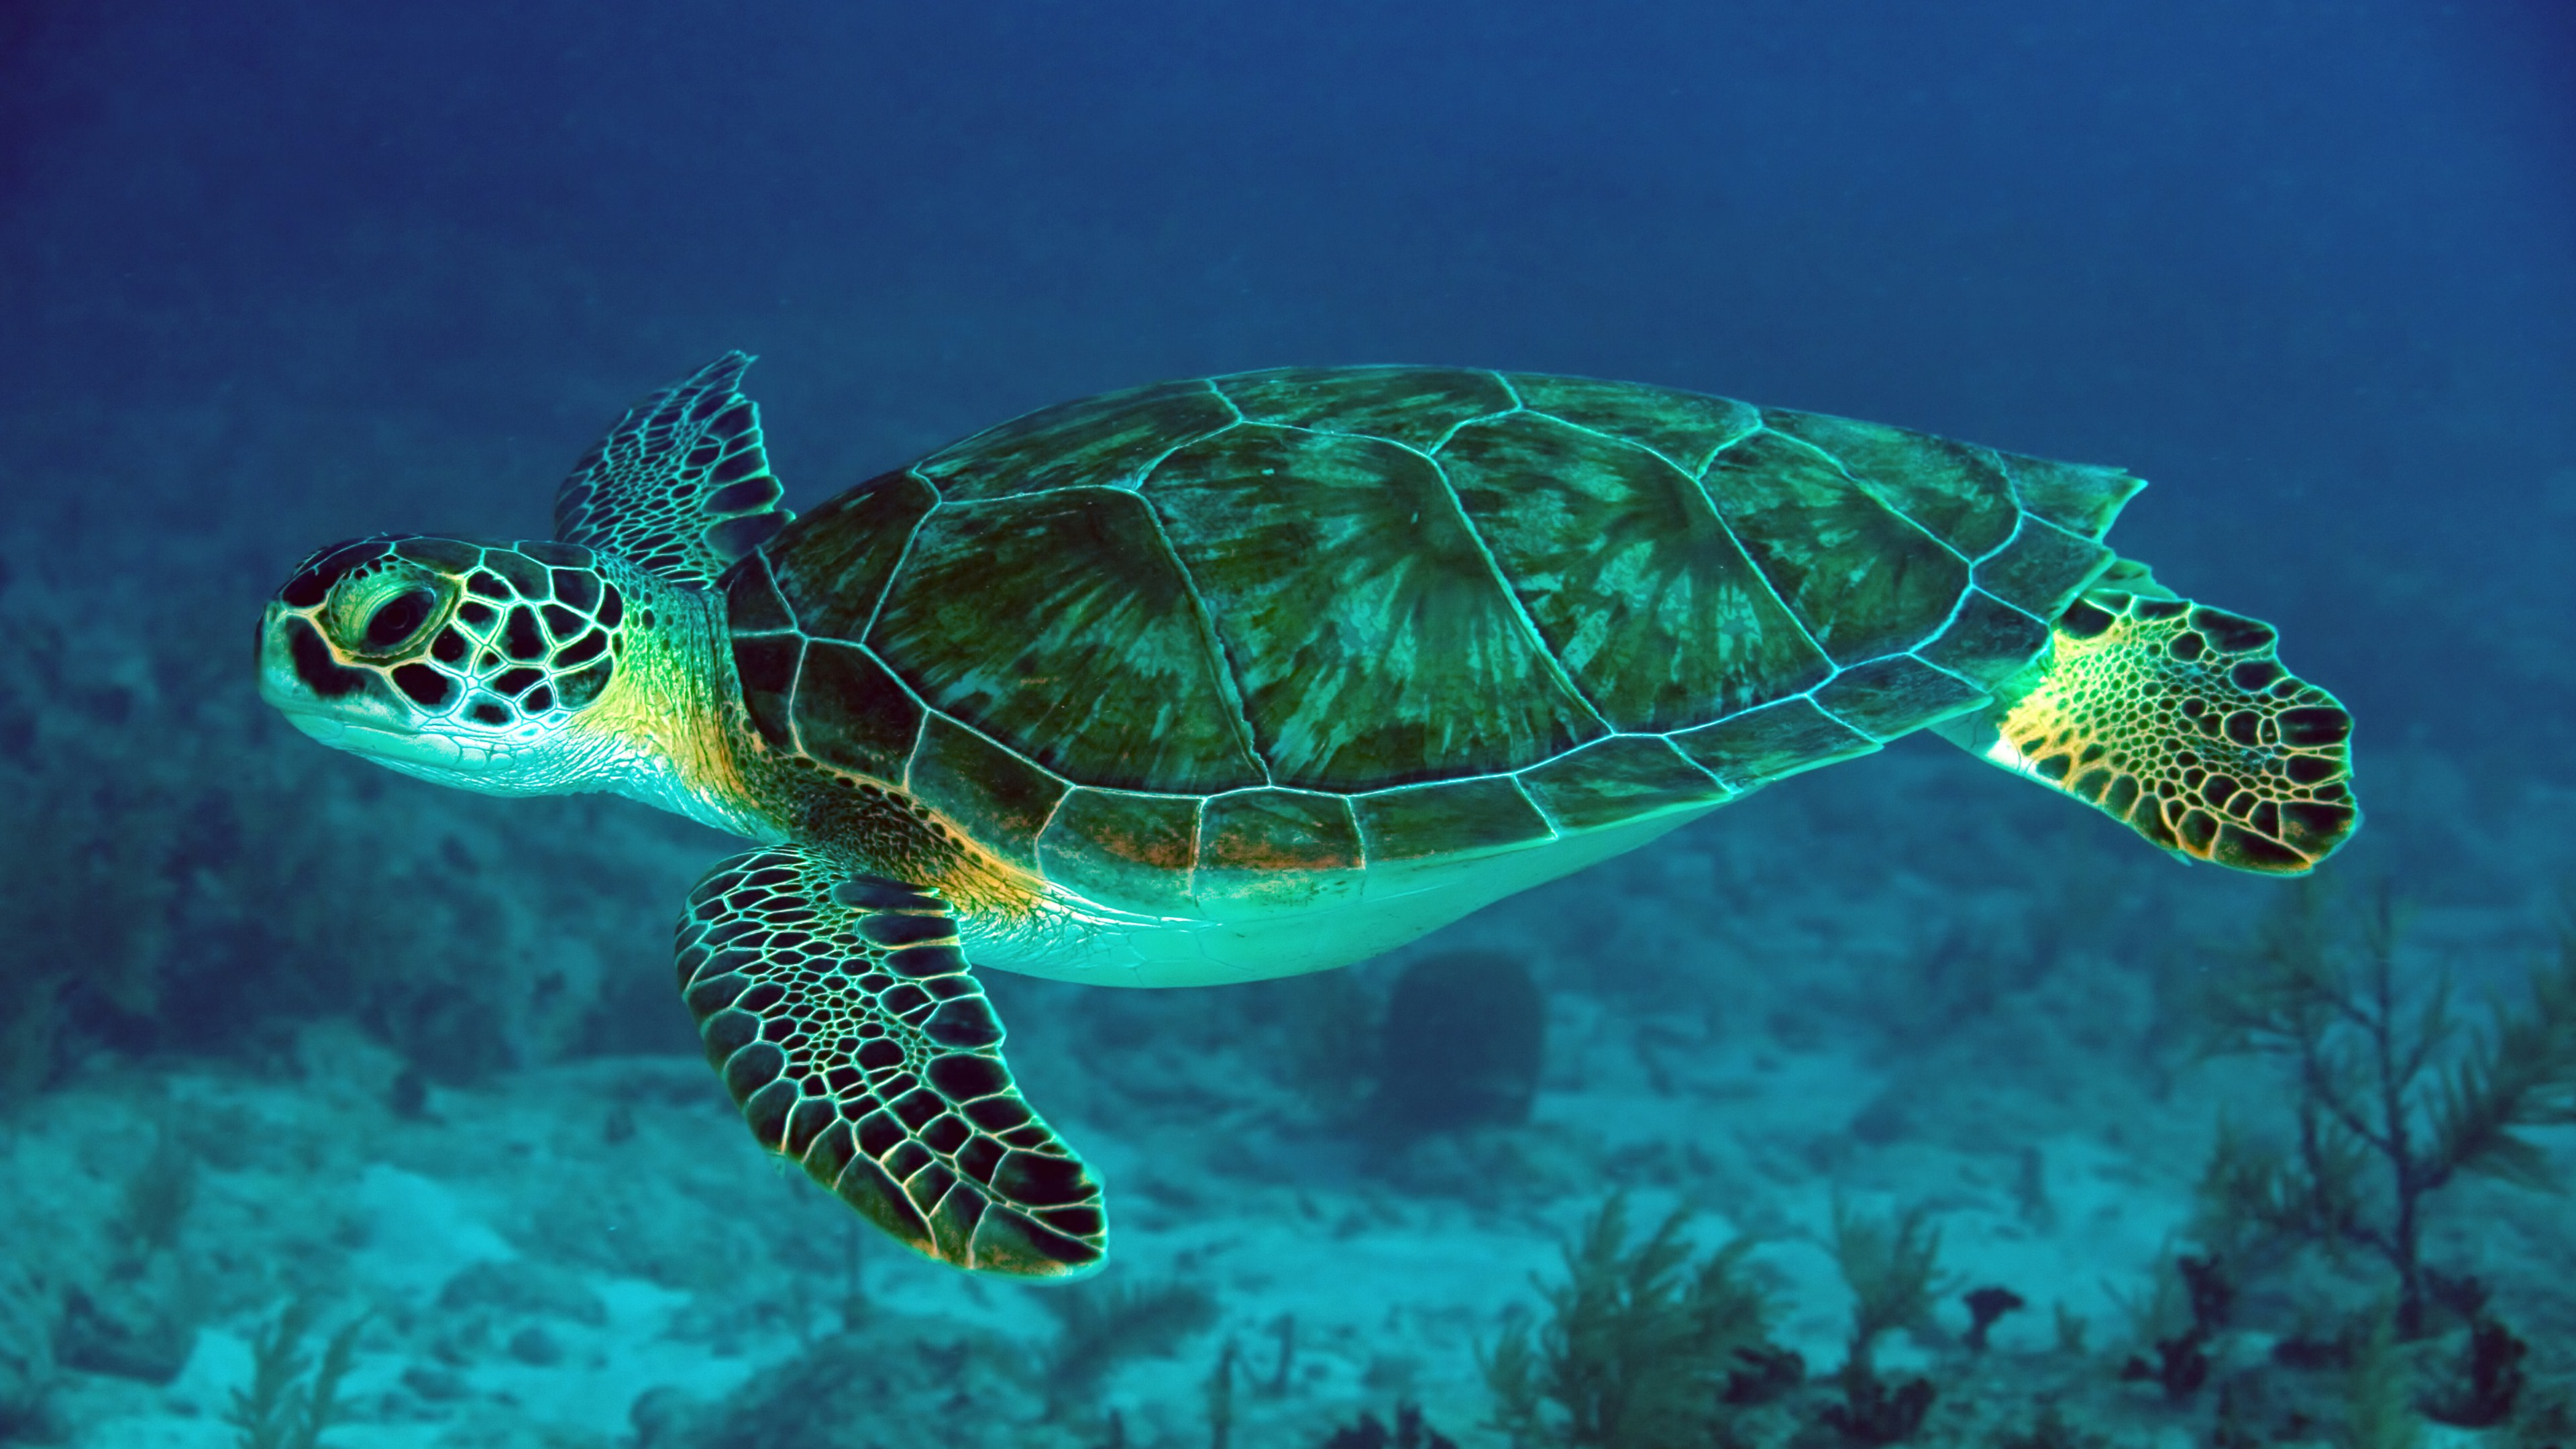 sea-turtle-desktop-background